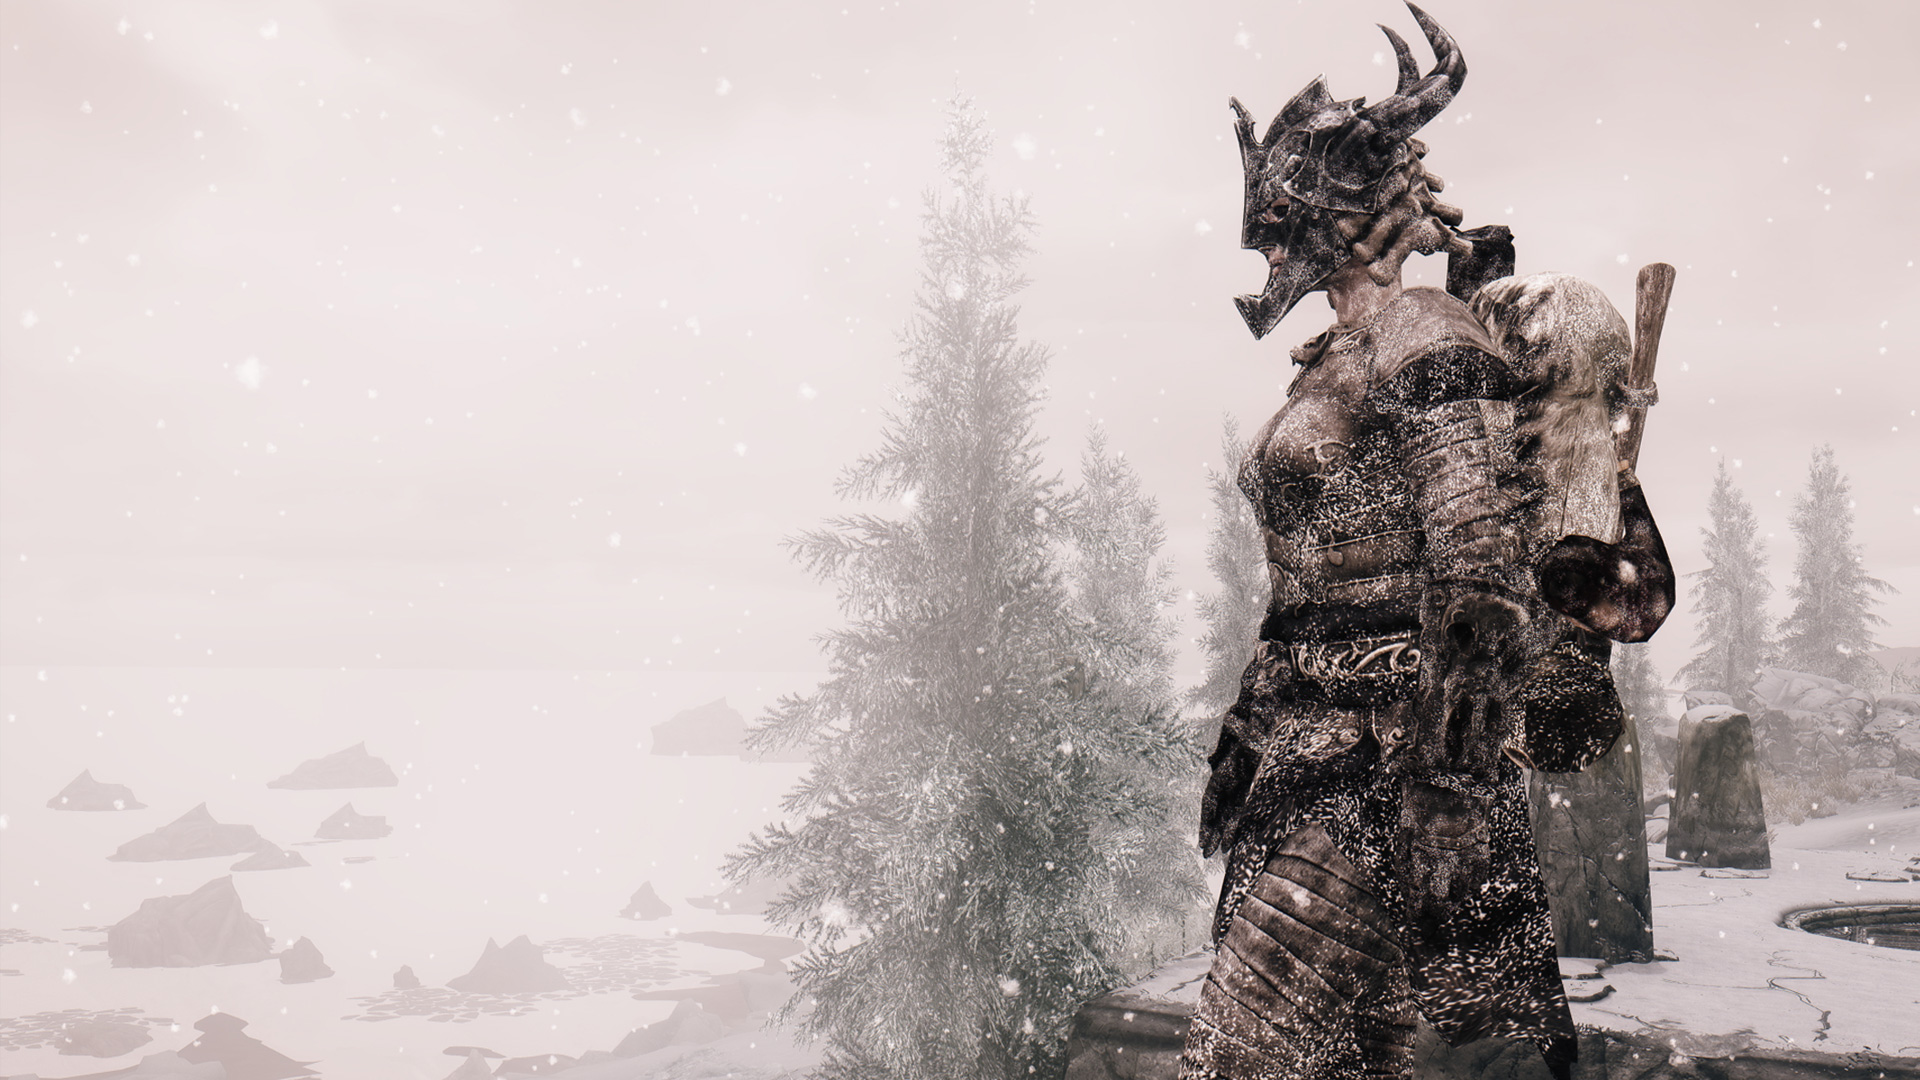 Skyrim wallpaper 24